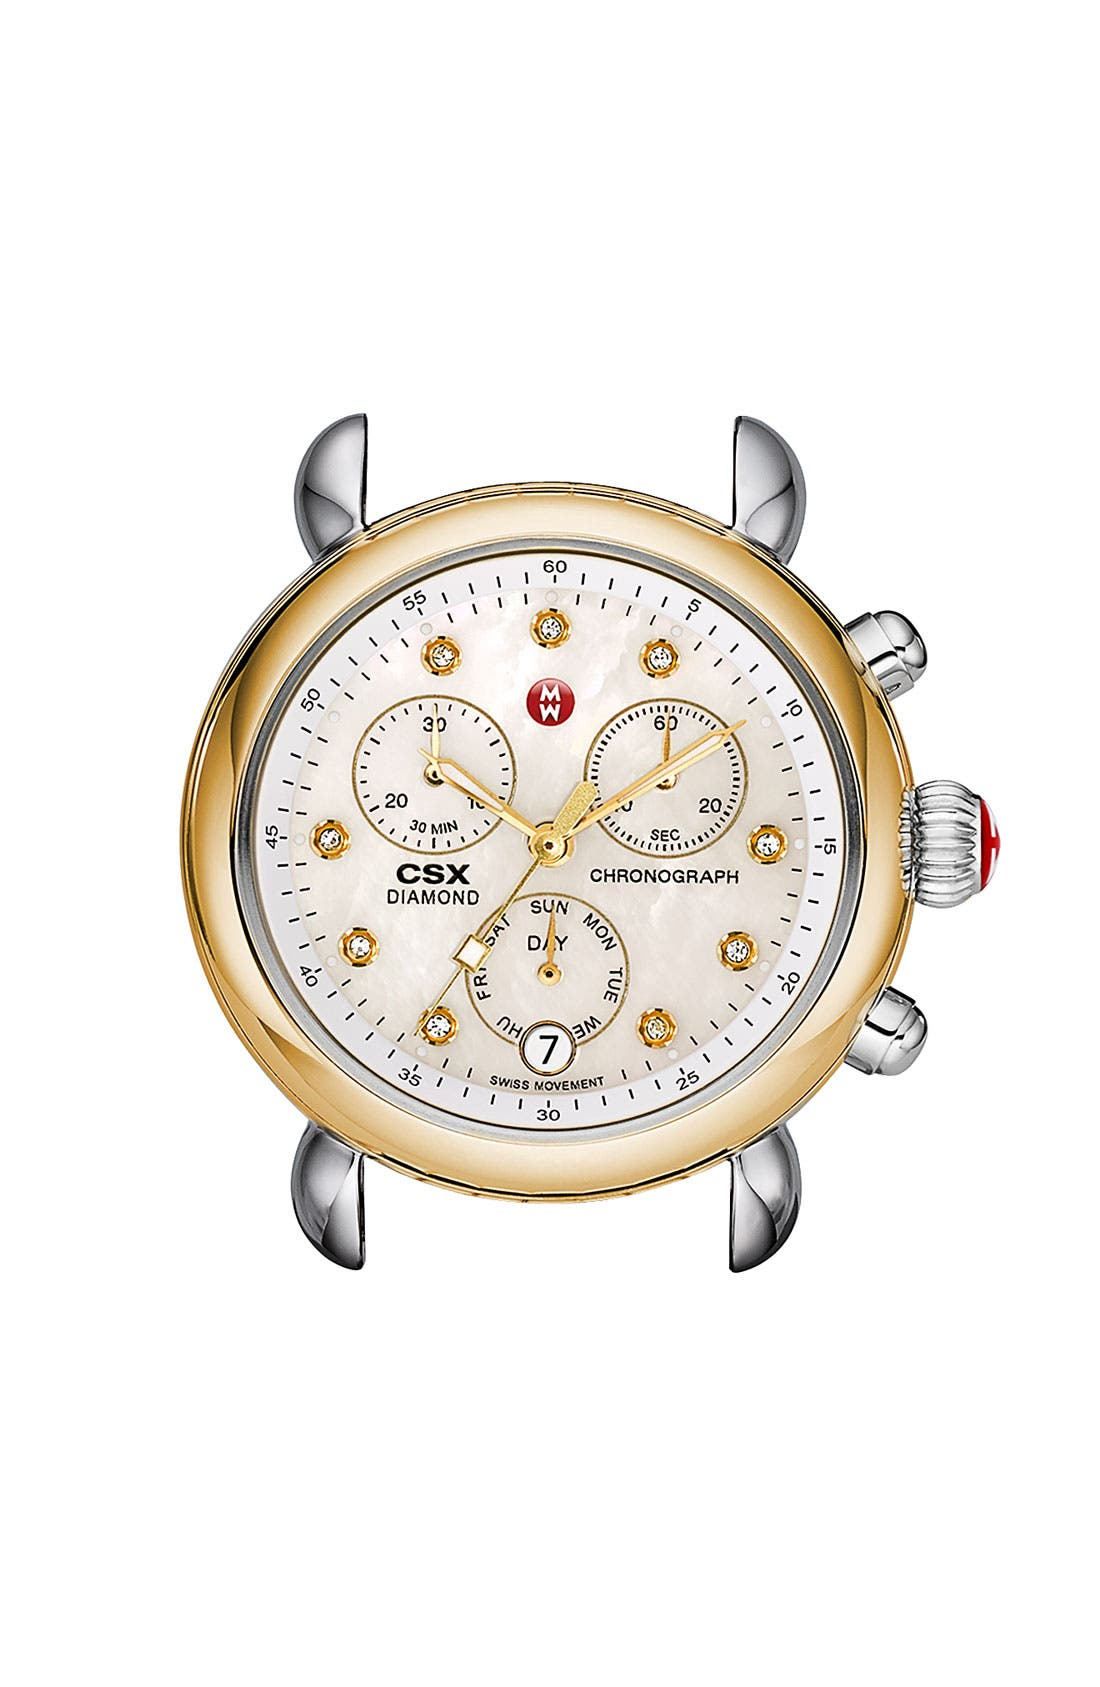 Alternate Image 1 Selected - MICHELE 'CSX-36' Diamond Dial Two-Tone Watch Case, 36mm